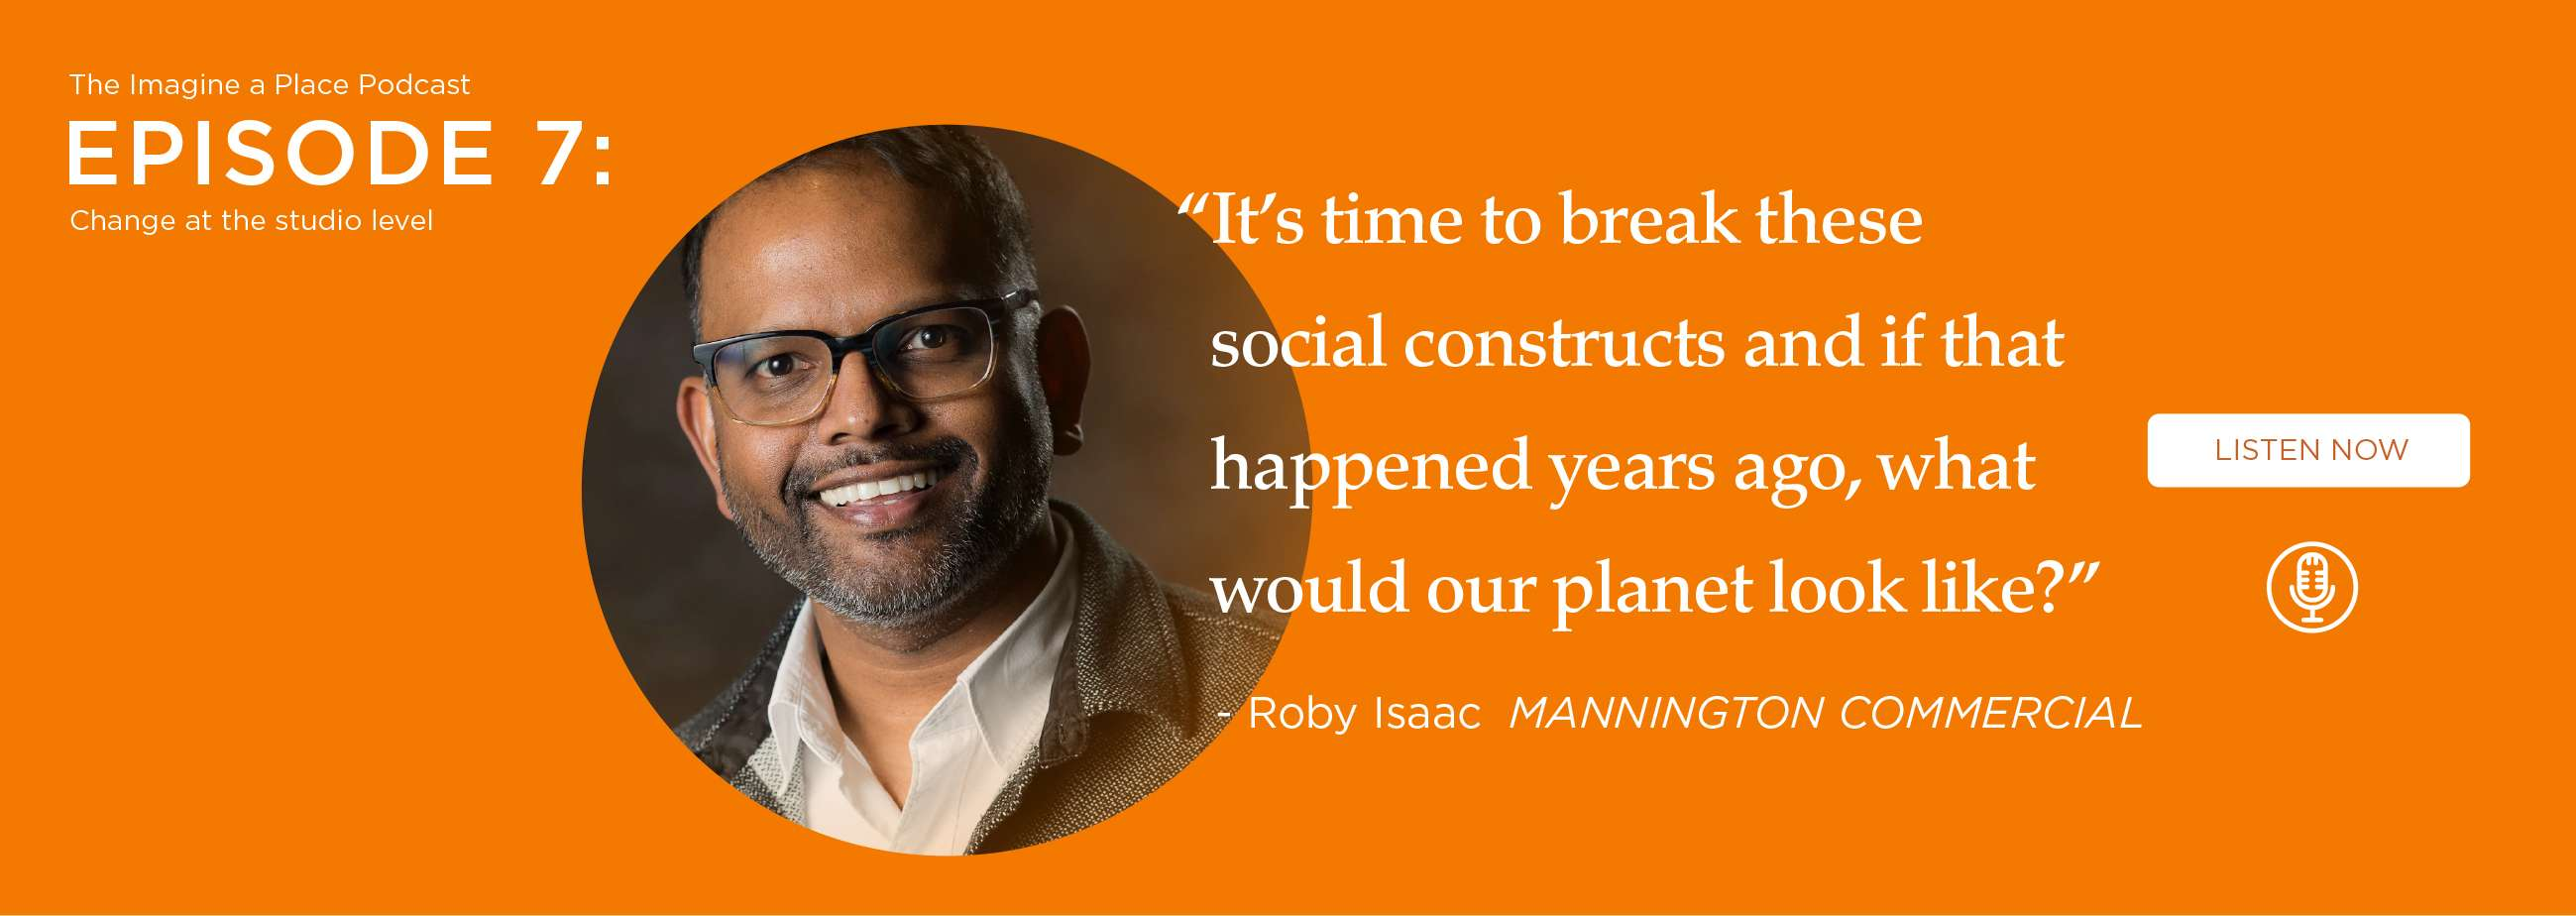 Roby Isaac (Mannington Commercial): Change at the studio level. - Ep. 07